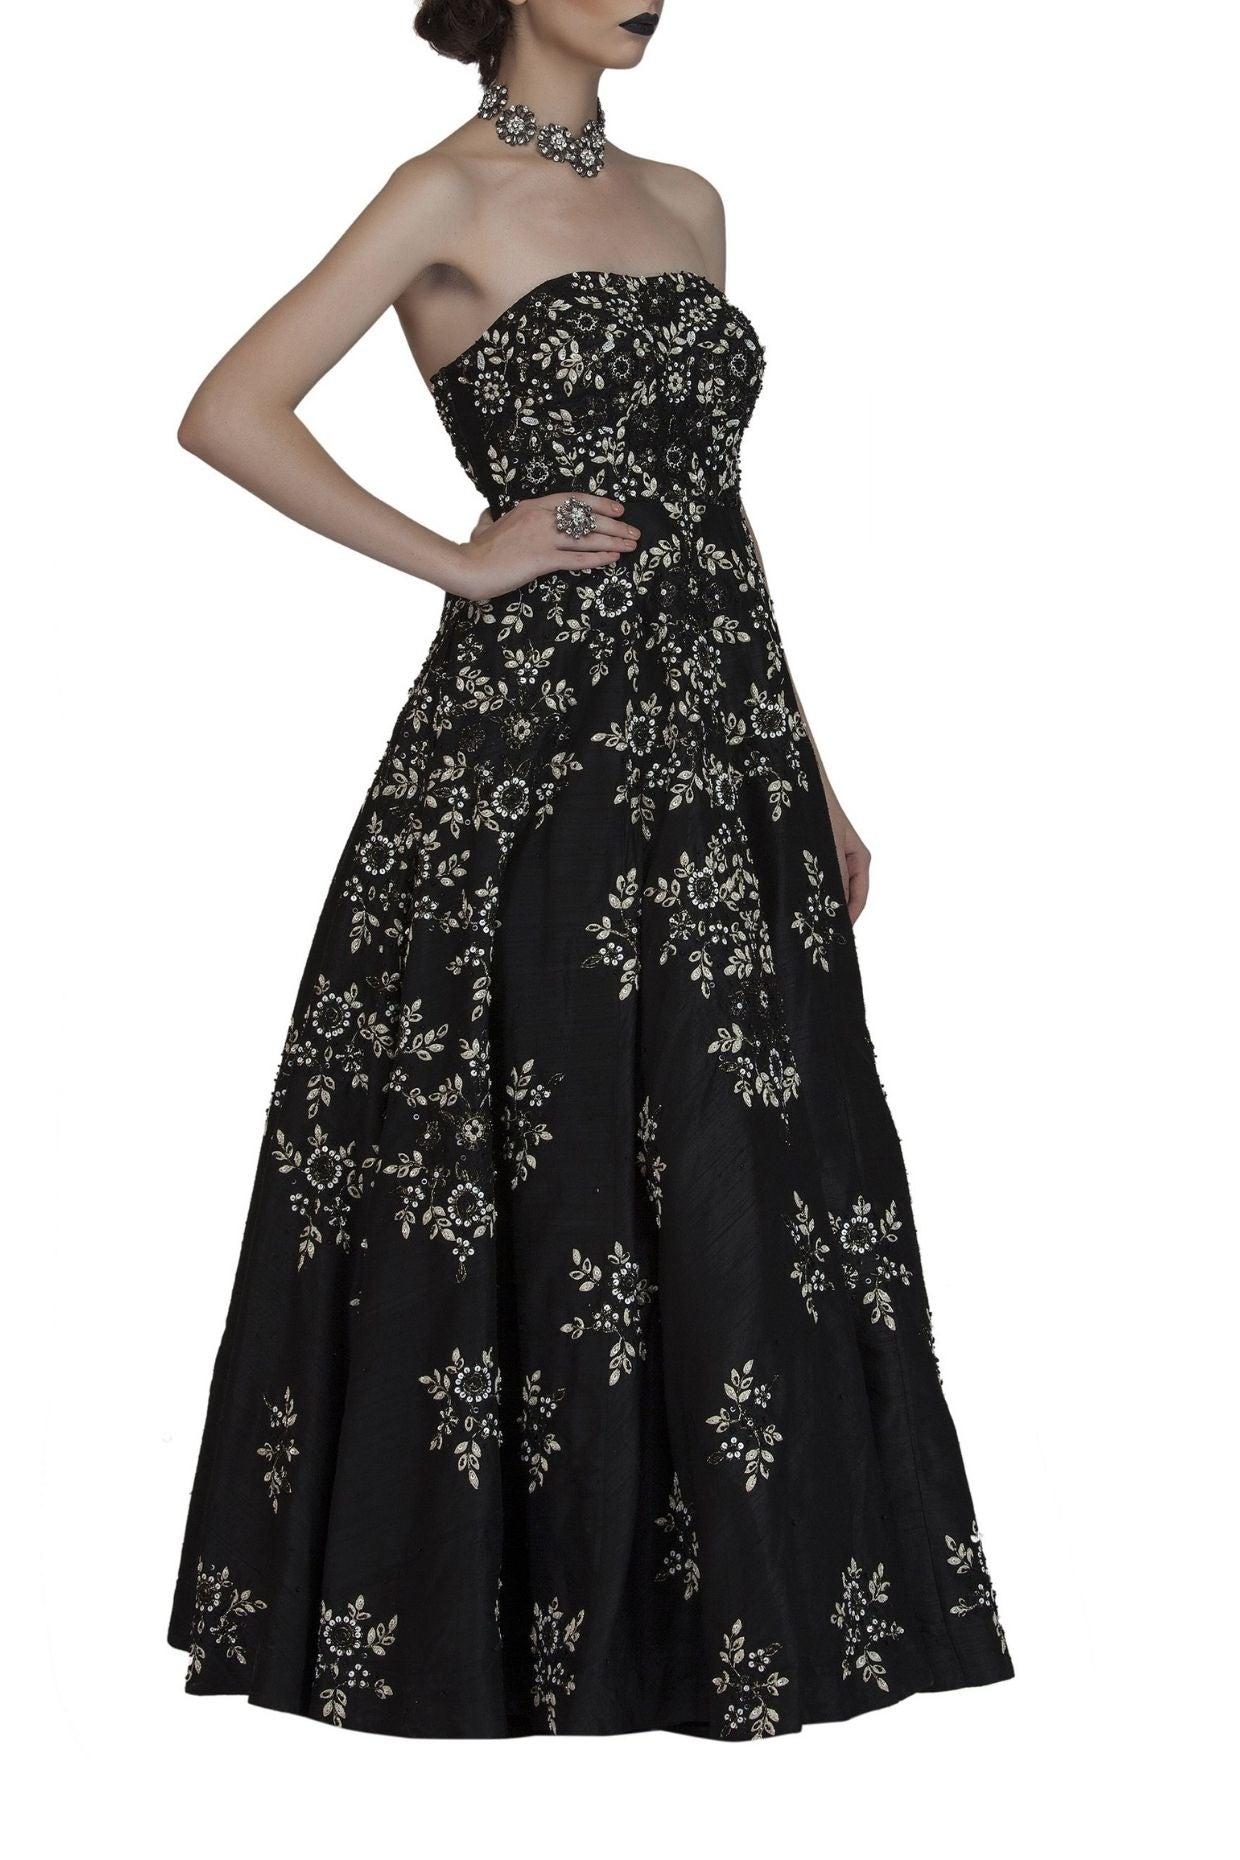 Black Bustier Embroidered Gown for Cocktail Party